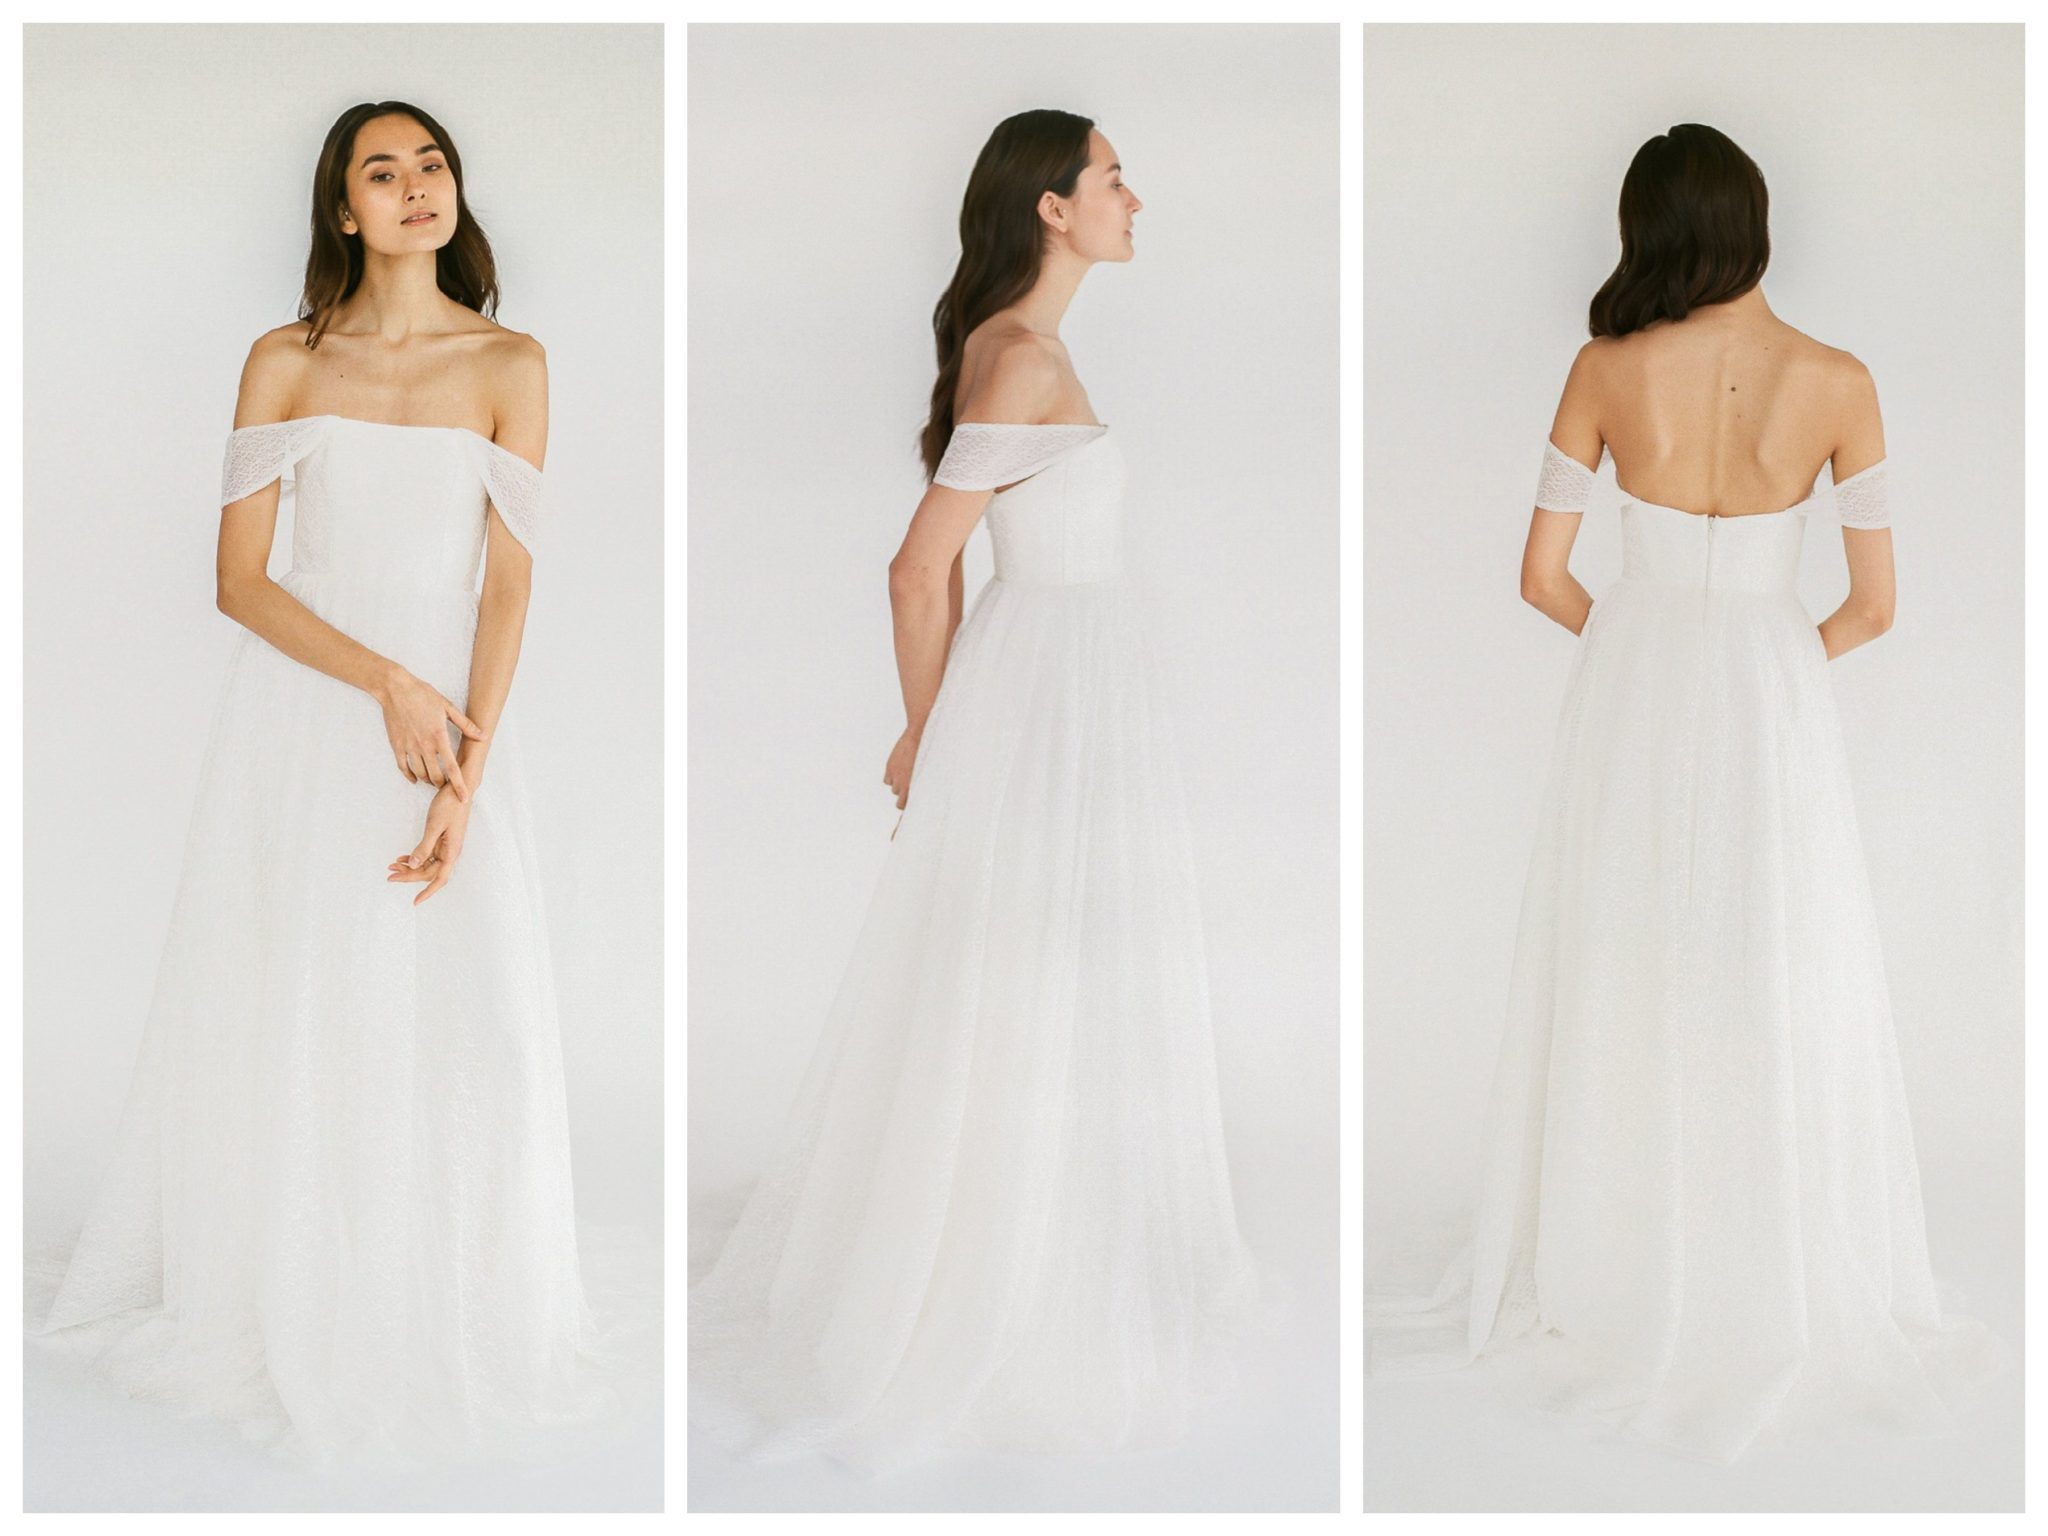 Wedding dresses for broad shoulders by top Los Angeles bridal shop, Love and Lace Bridal Salon: Truvelle Bridal's Vanessa